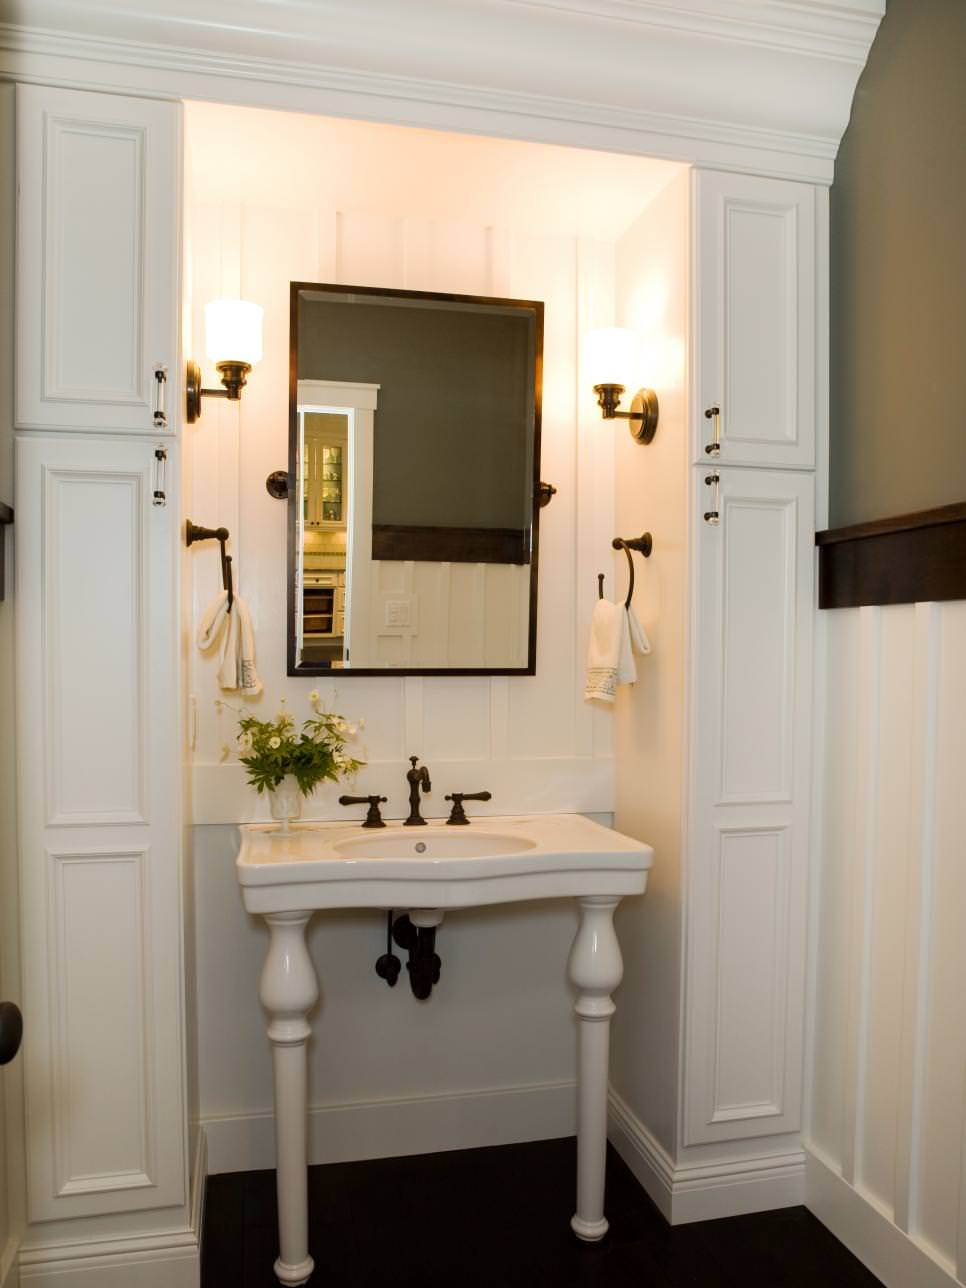 Stylish White Pedestal Sink Model